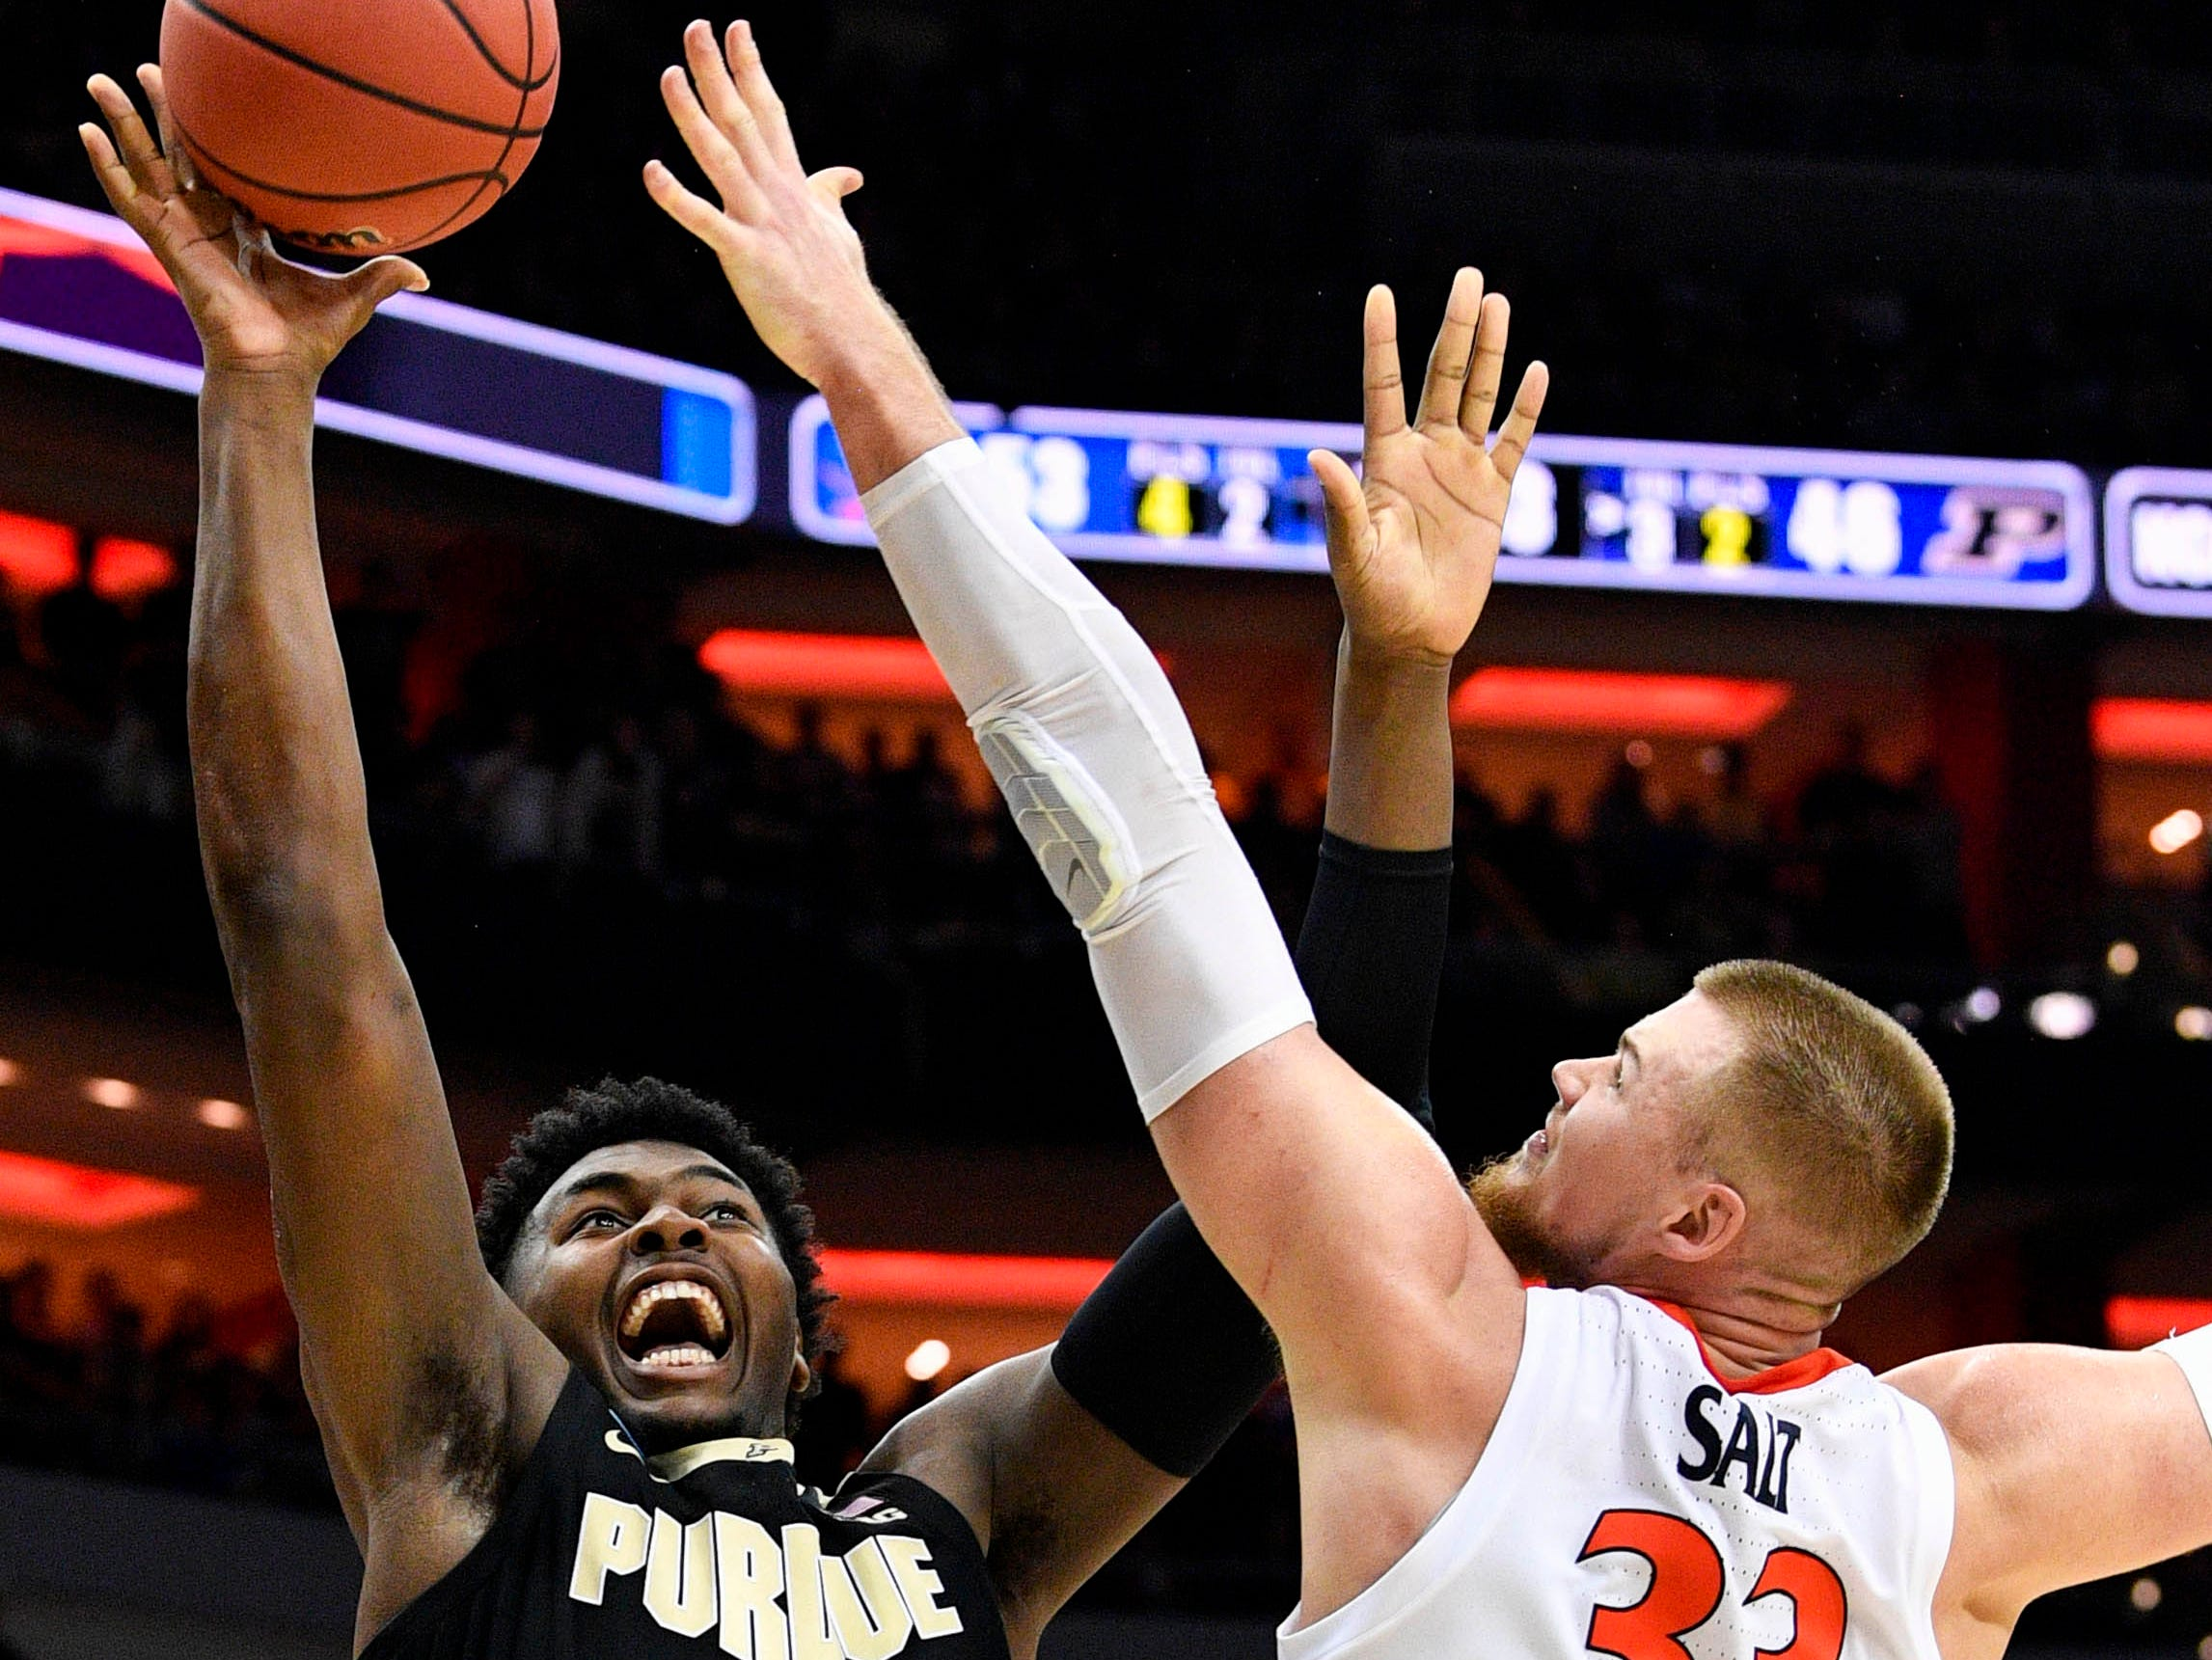 Mar 30, 2019; Louisville, KY, United States; Purdue Boilermakers forward Trevion Williams (50) goes up for a shot as Virginia Cavaliers center Jack Salt (33) defends during the second half in the championship game of the south regional of the 2019 NCAA Tournament at KFC Yum Center. Mandatory Credit: Jamie Rhodes-USA TODAY Sports